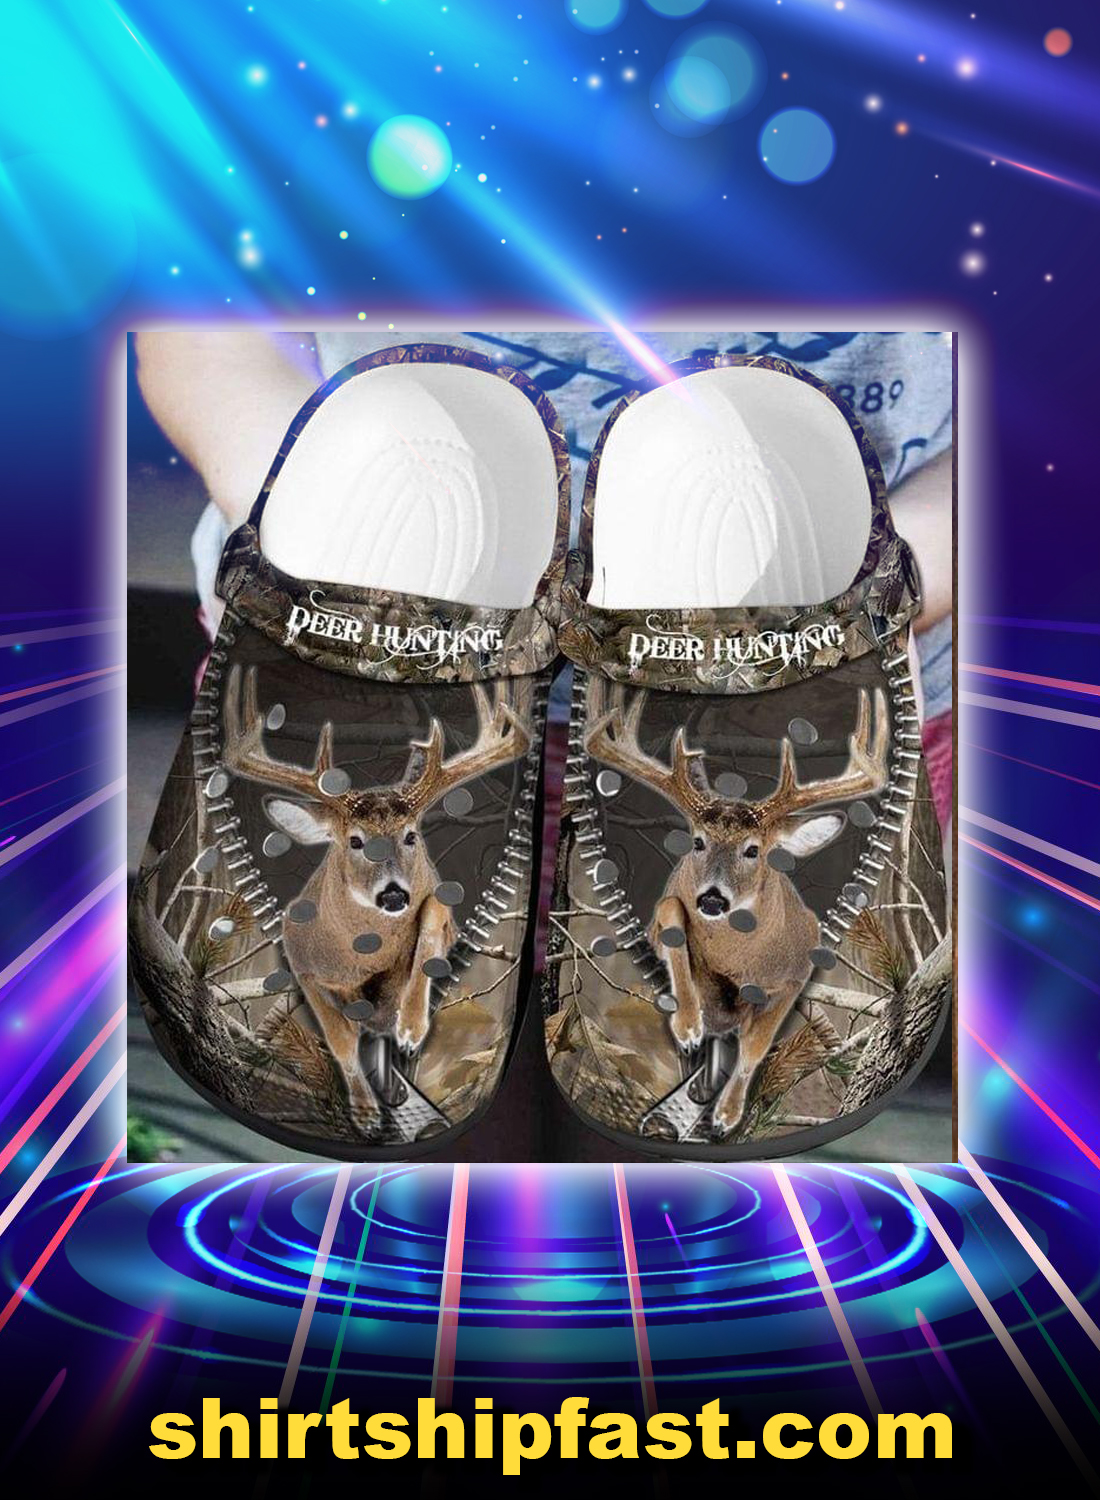 Deer hunting crocs shoes crocband - Picture 1